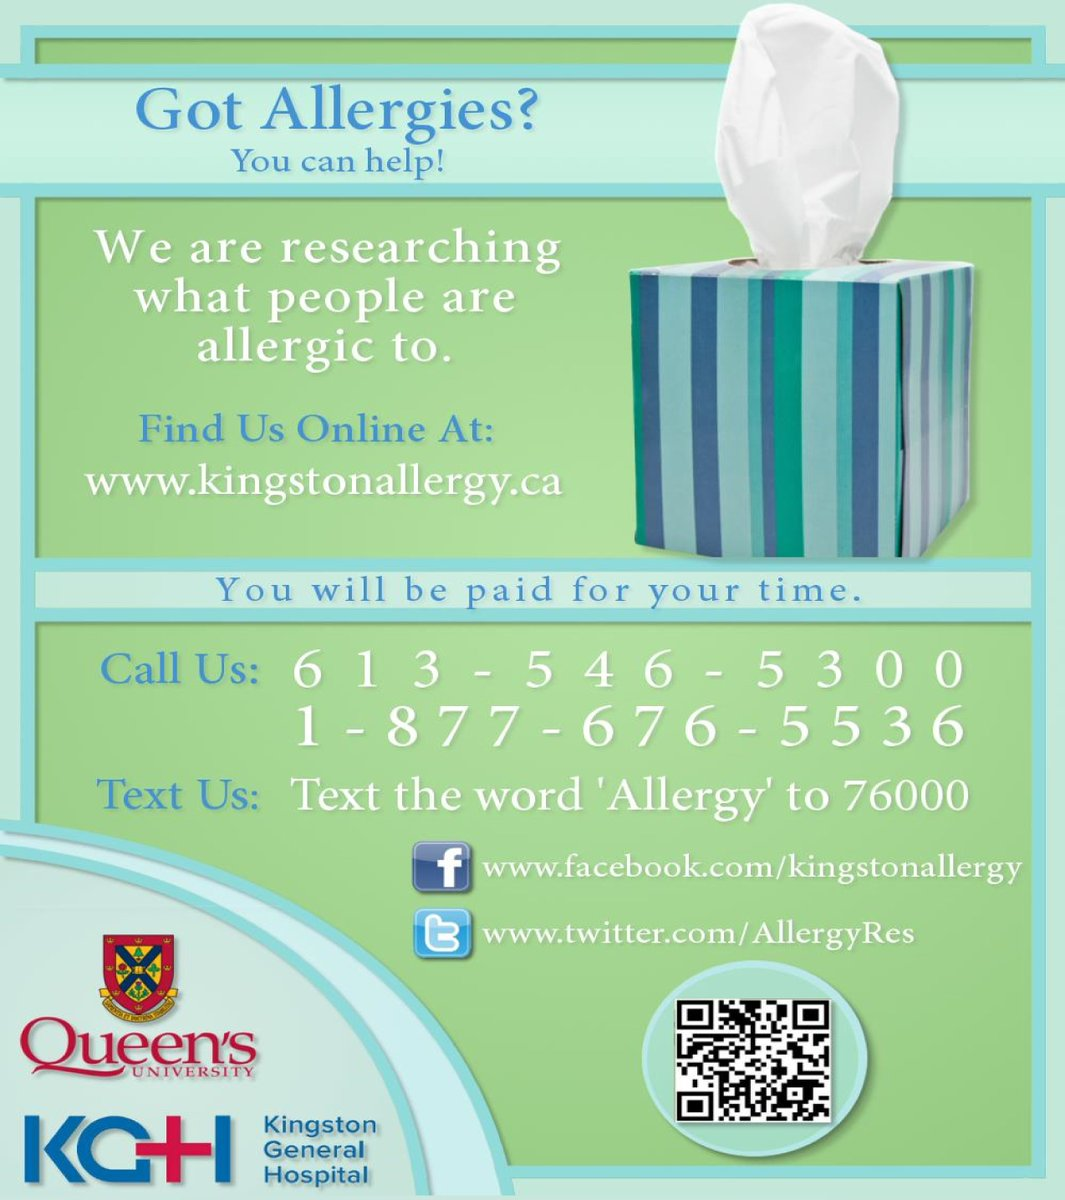 If you are in #ygk and think health and #allergy research is a great thing to support - trust us, we have a study for you, somewhere! @YGKReTweeter @KGHresearch<br>http://pic.twitter.com/WxXOOAehuO